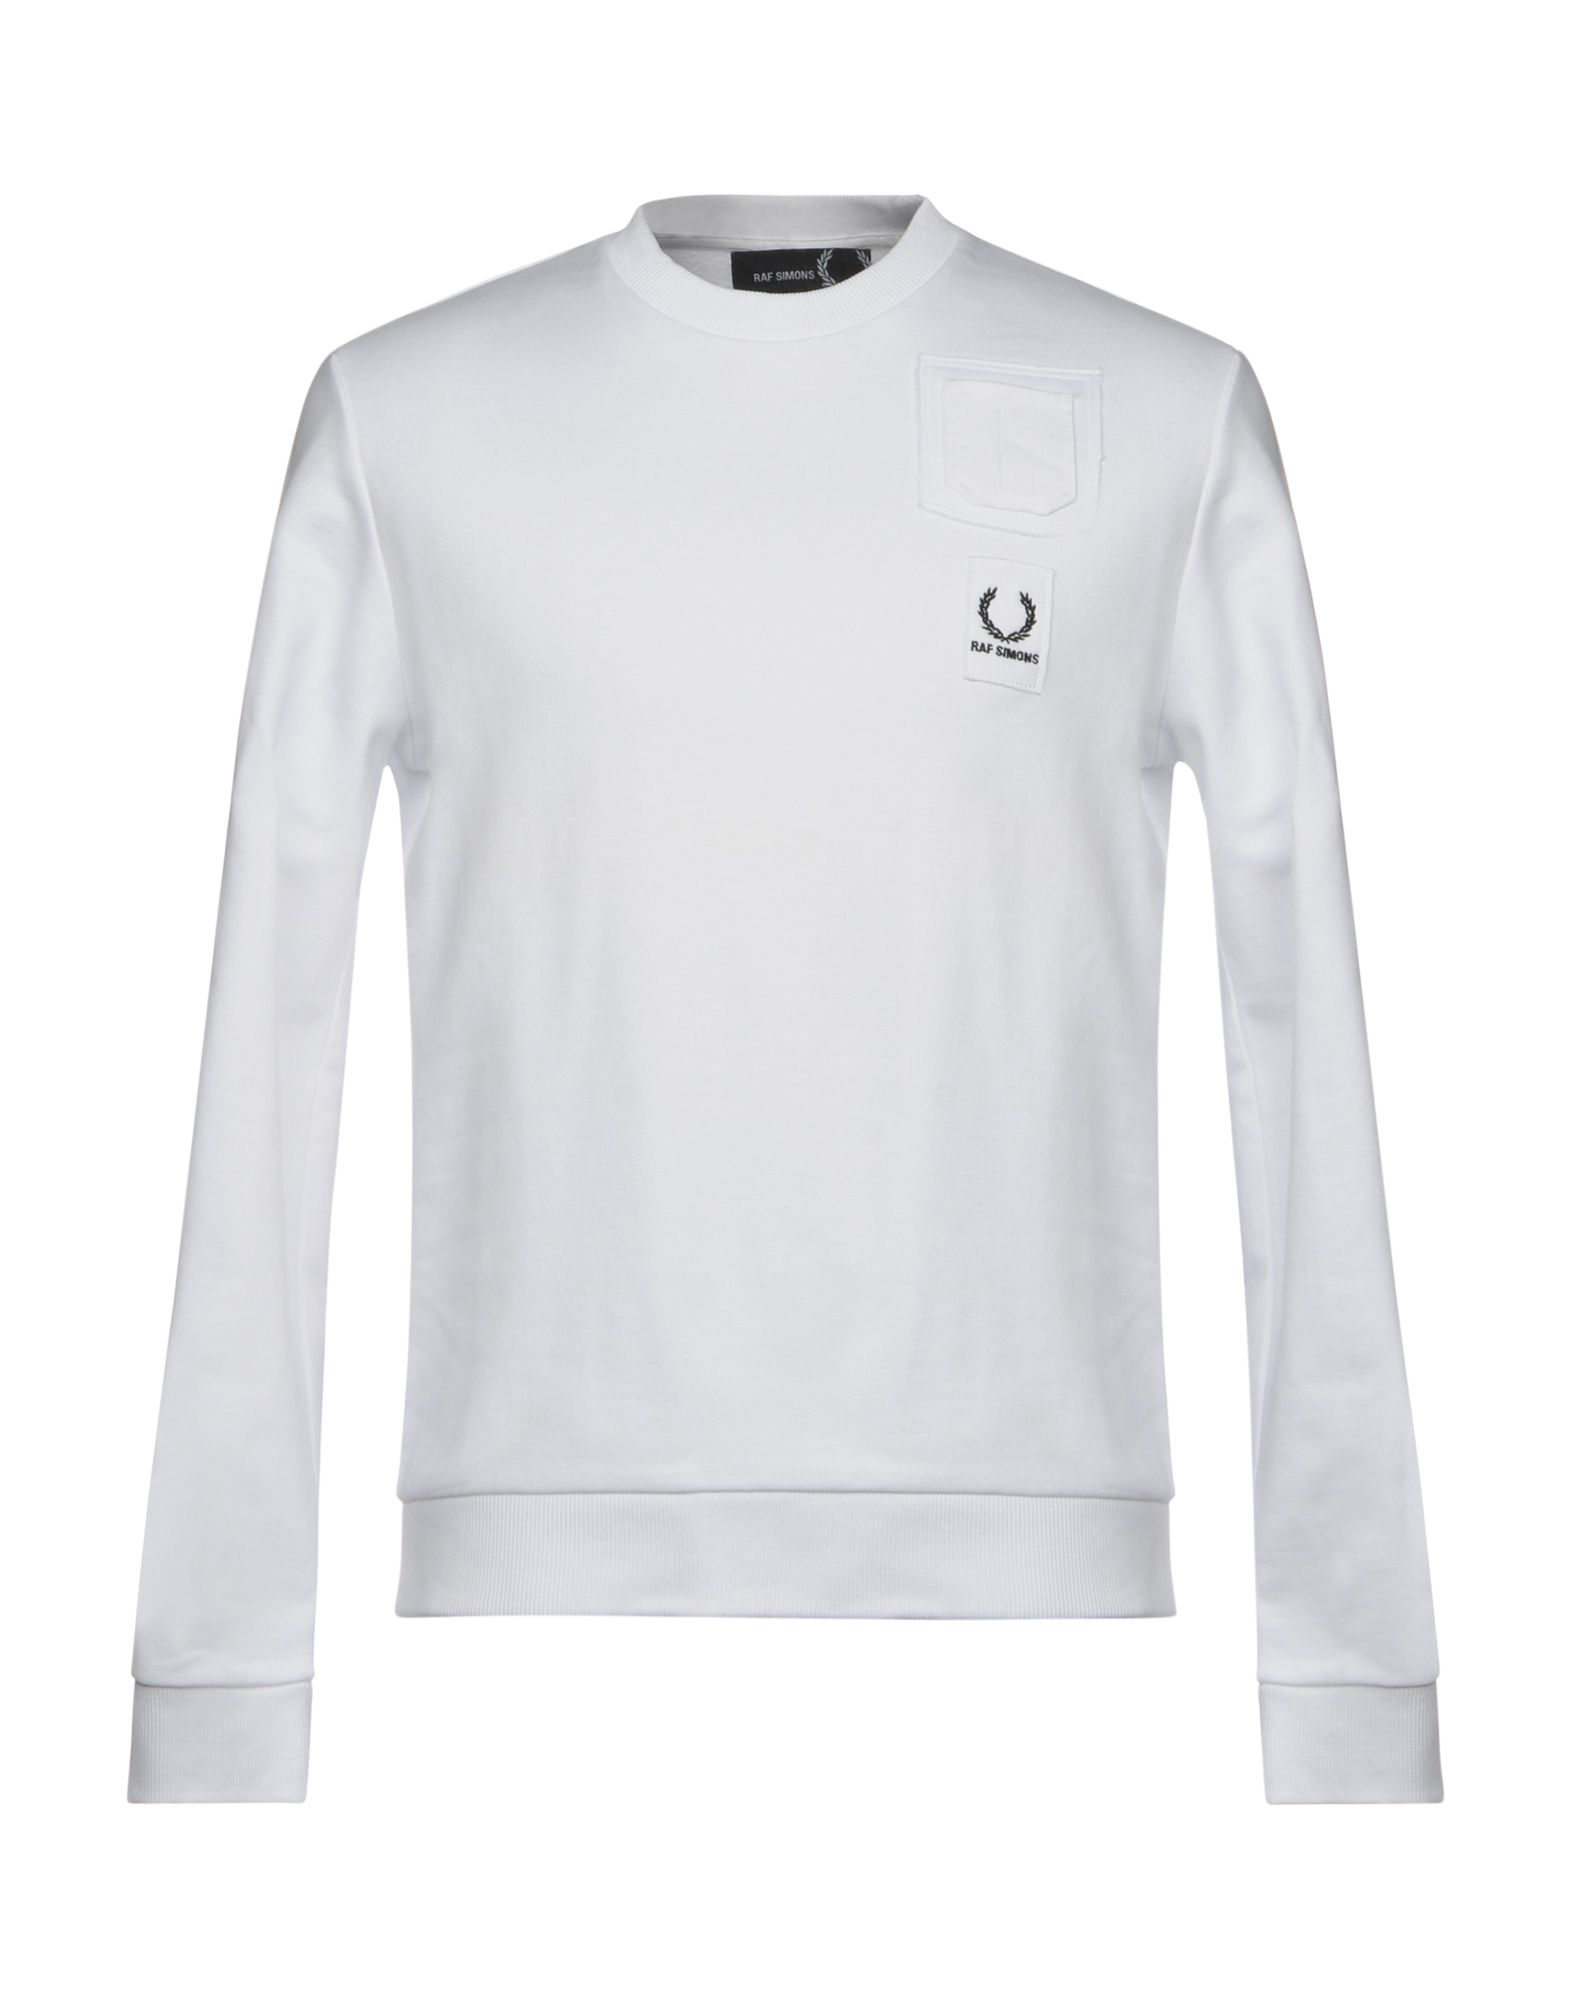 RAF SIMONS FRED PERRY Толстовка raf simons fred perry поло